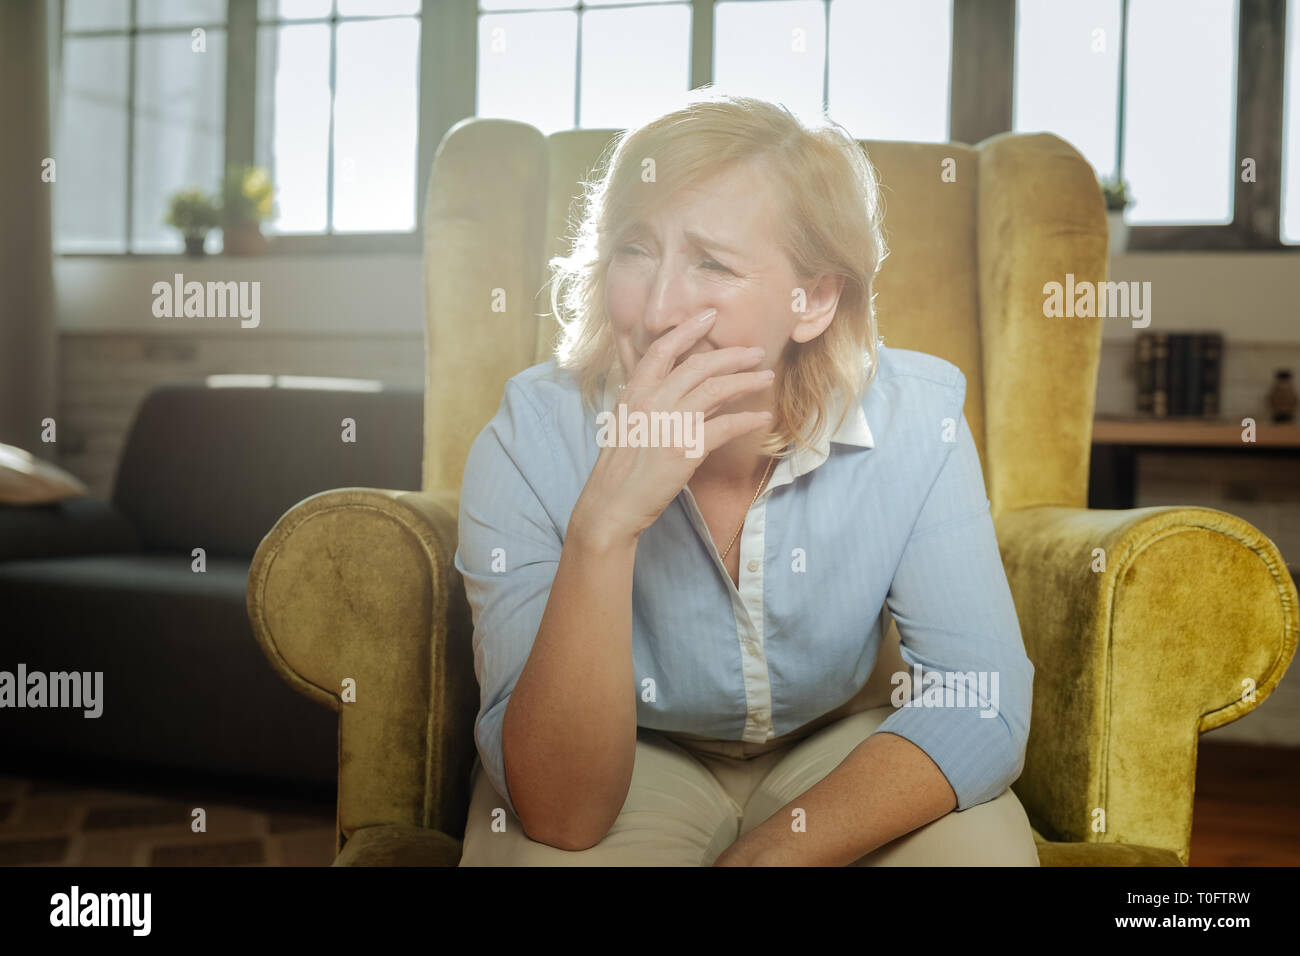 Dramatic old woman with blonde hair crying and sobbing - Stock Image